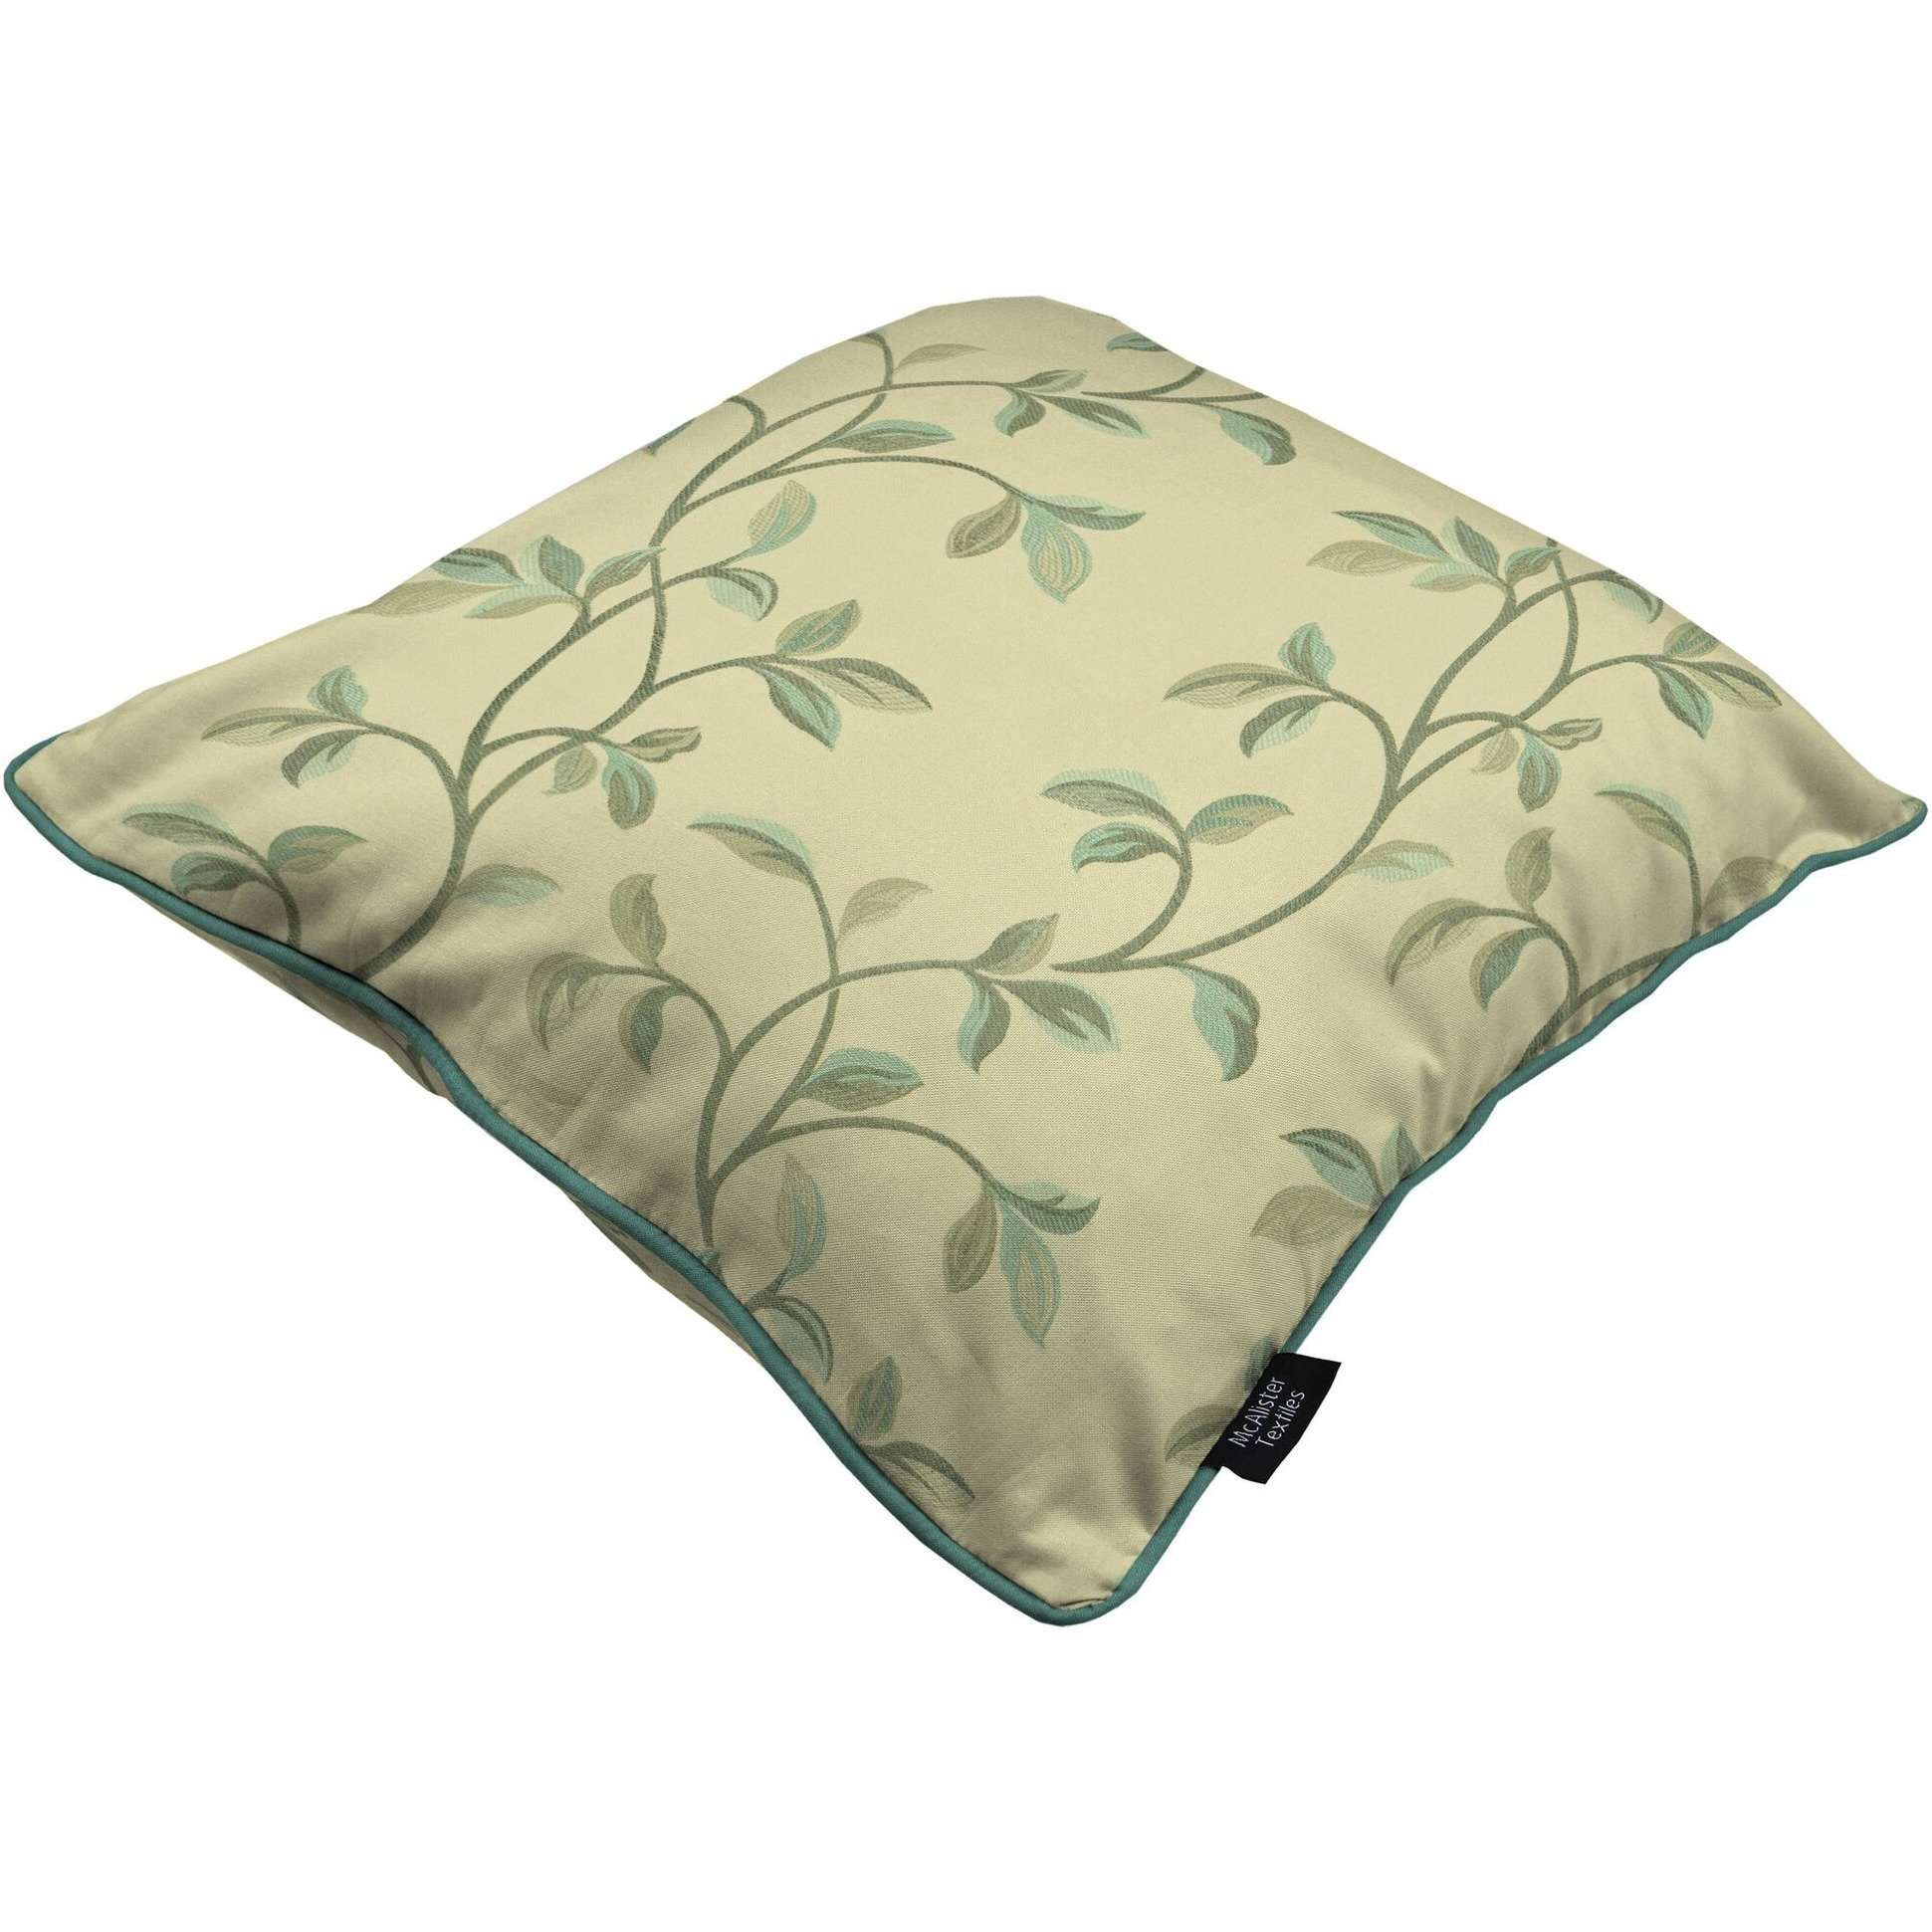 McAlister Textiles Annabel Floral Duck Egg Blue Cushion Cushions and Covers